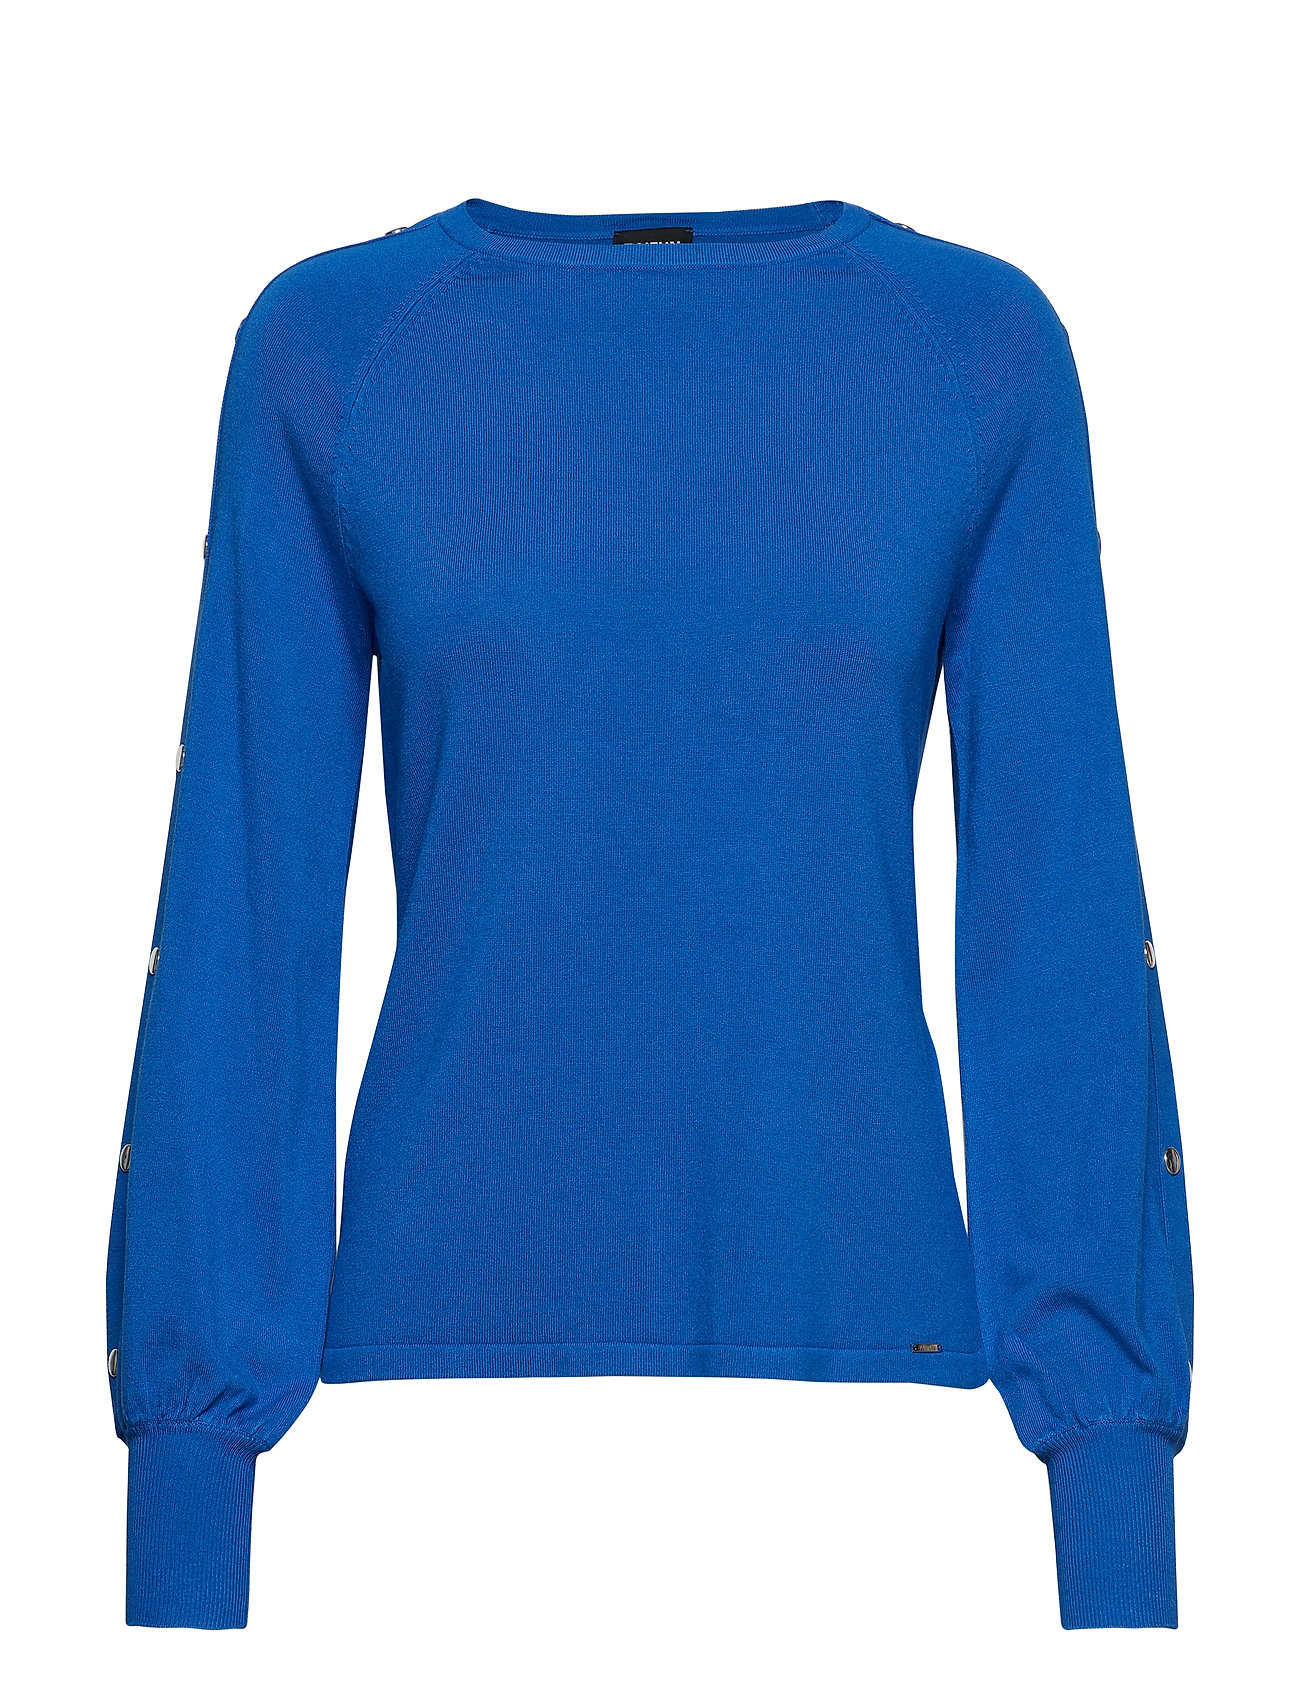 Taifun PULLOVER LONG-SLEEVE - COBALT BLUE